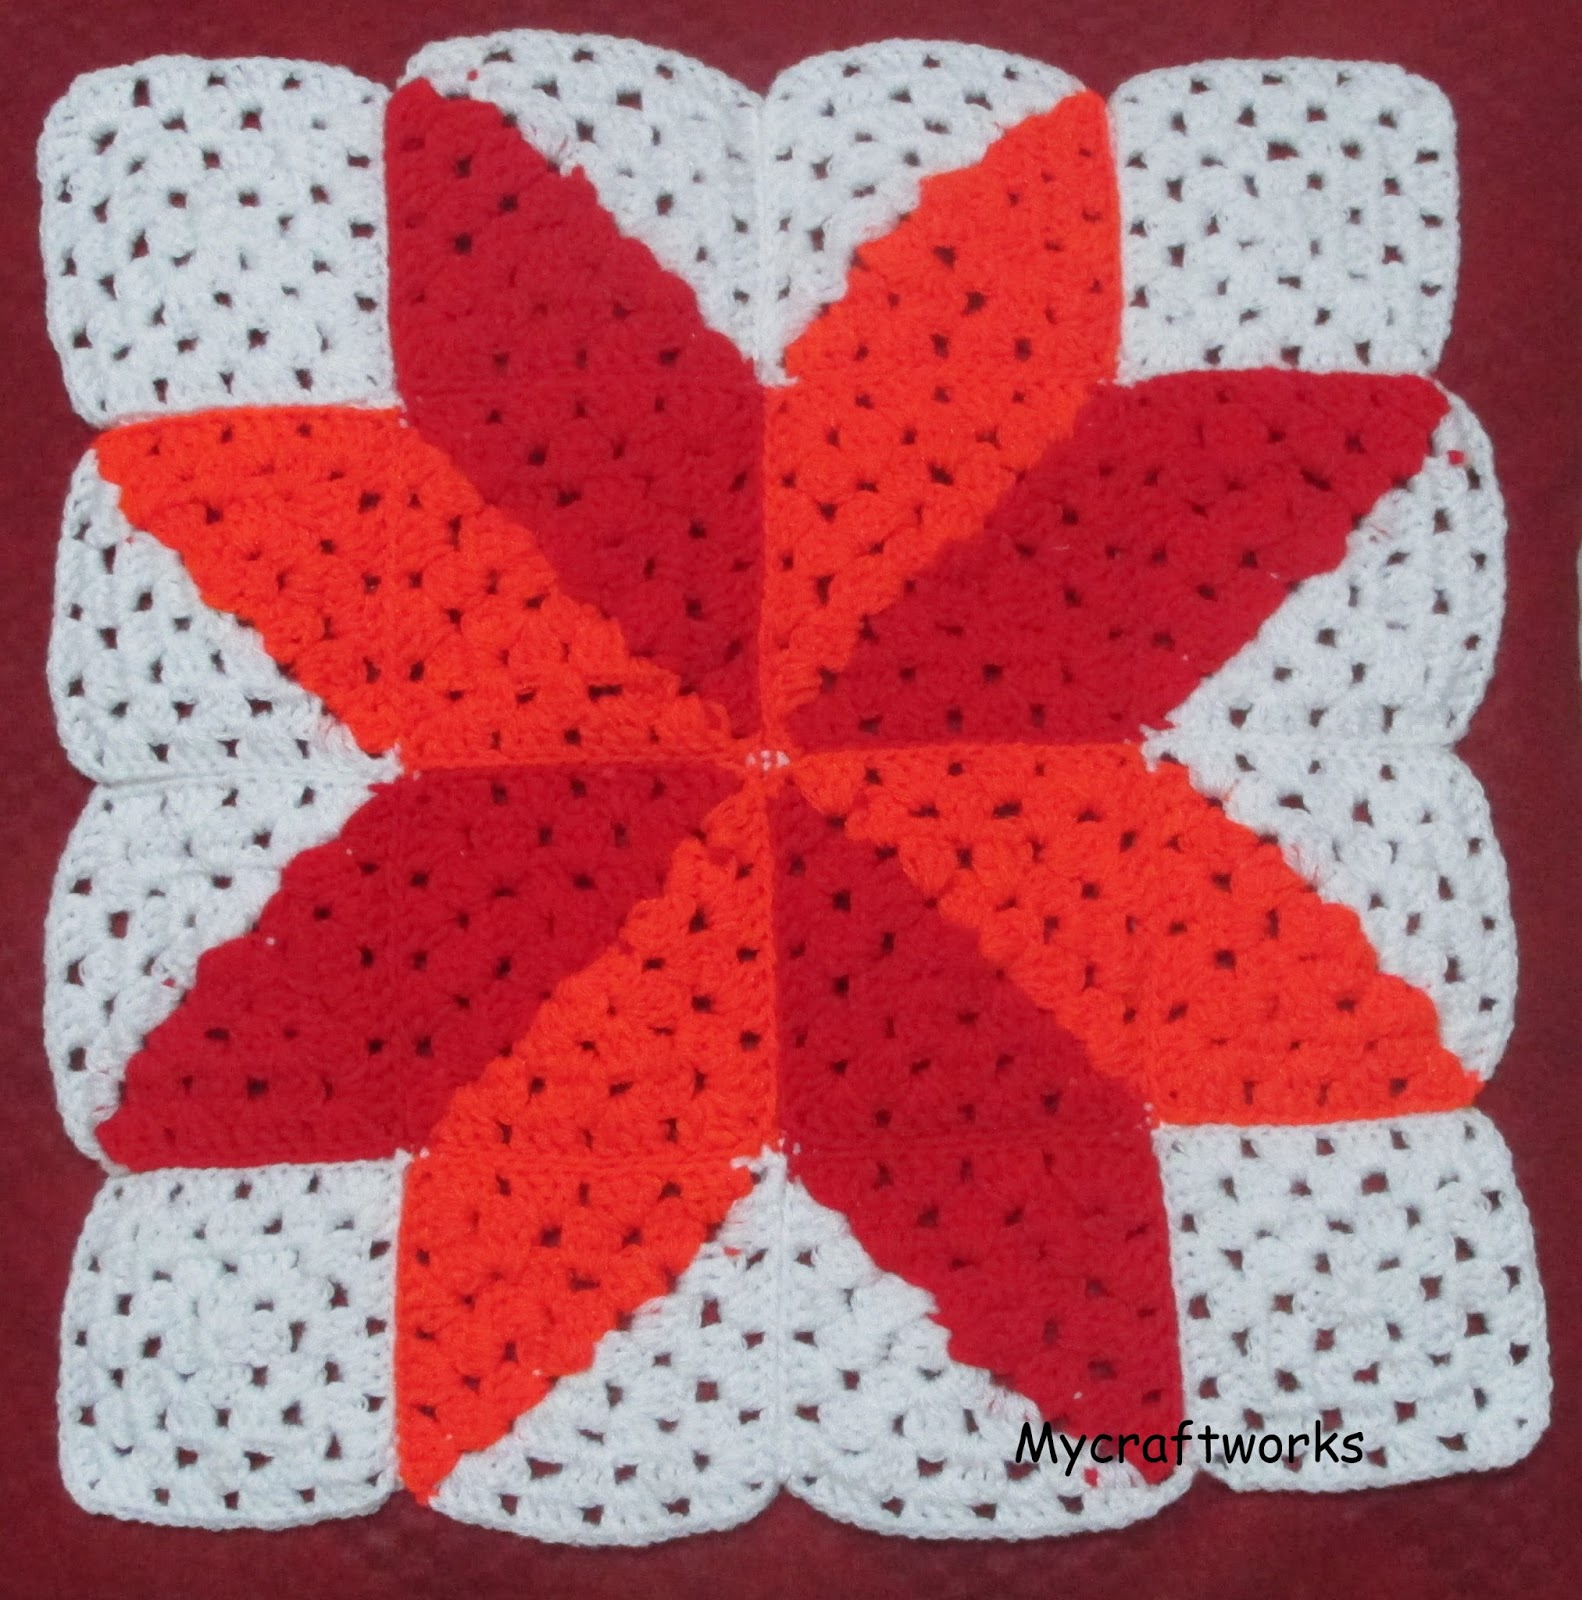 My craft works: Two colour granny squares